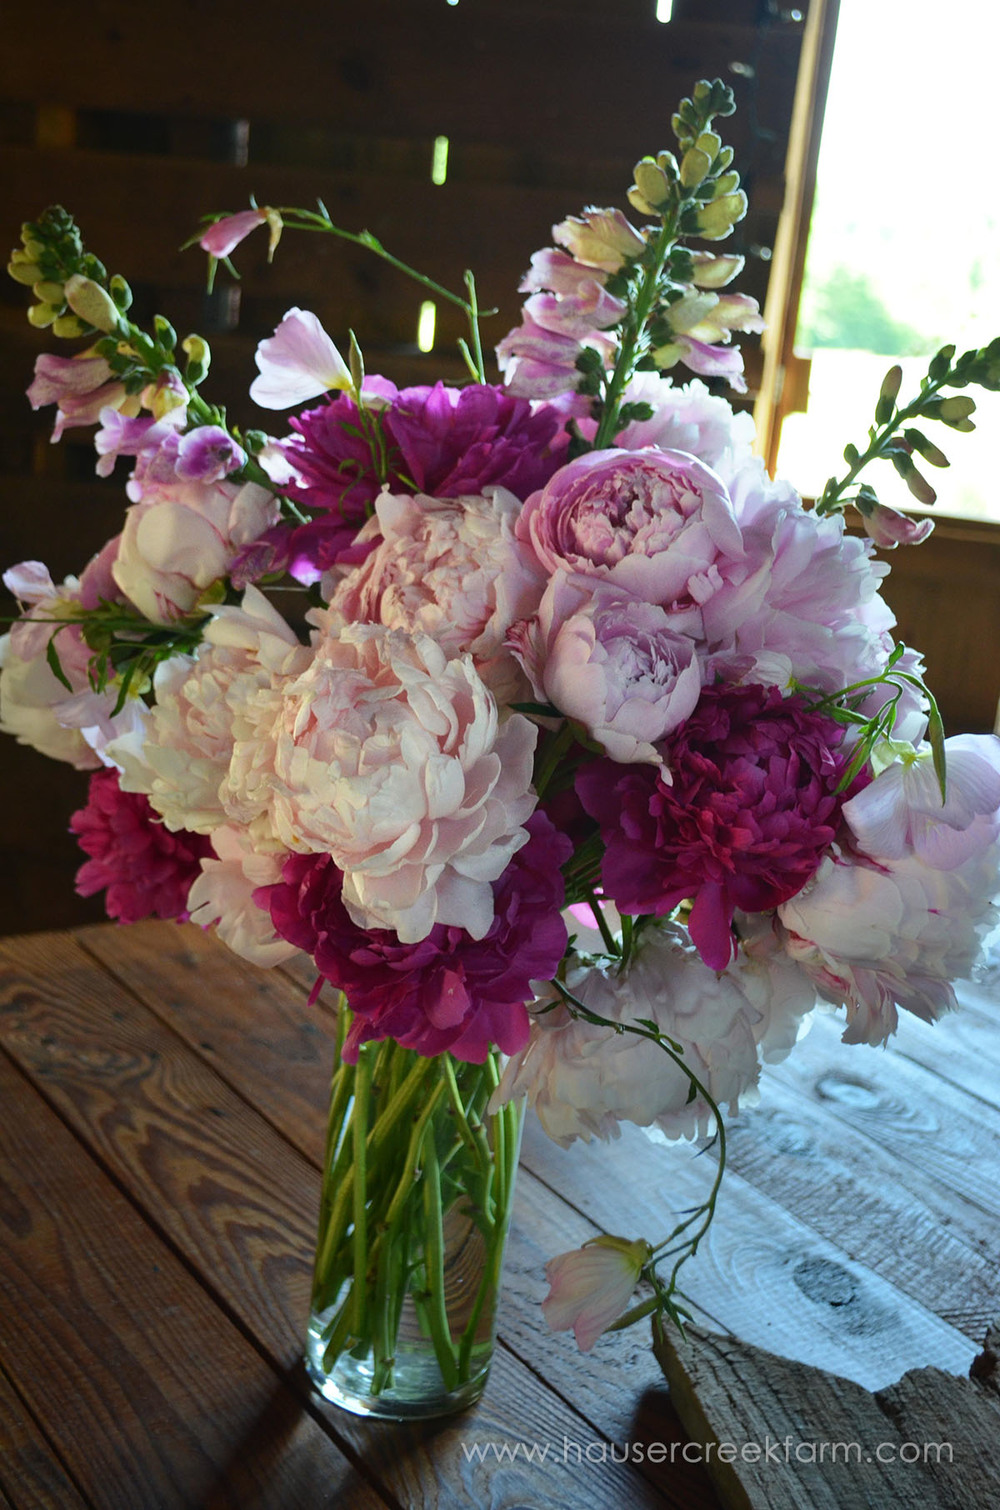 Peony arrangement on old table at the farm